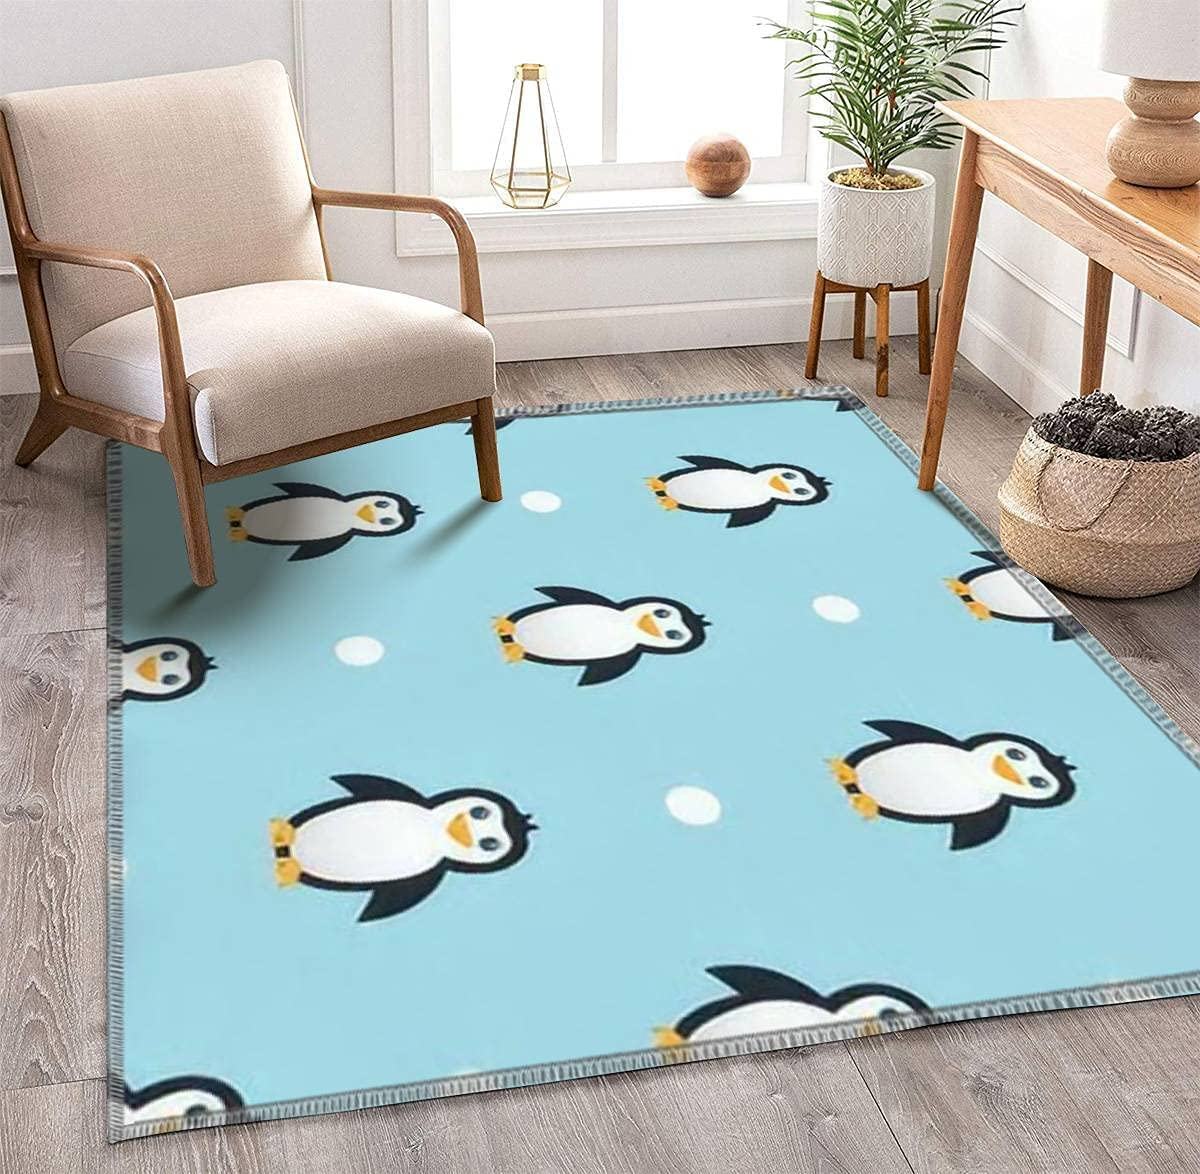 Kids Fashionable Area Rugs Penguin Seamless Some reservation Pattern Light Blue on Background